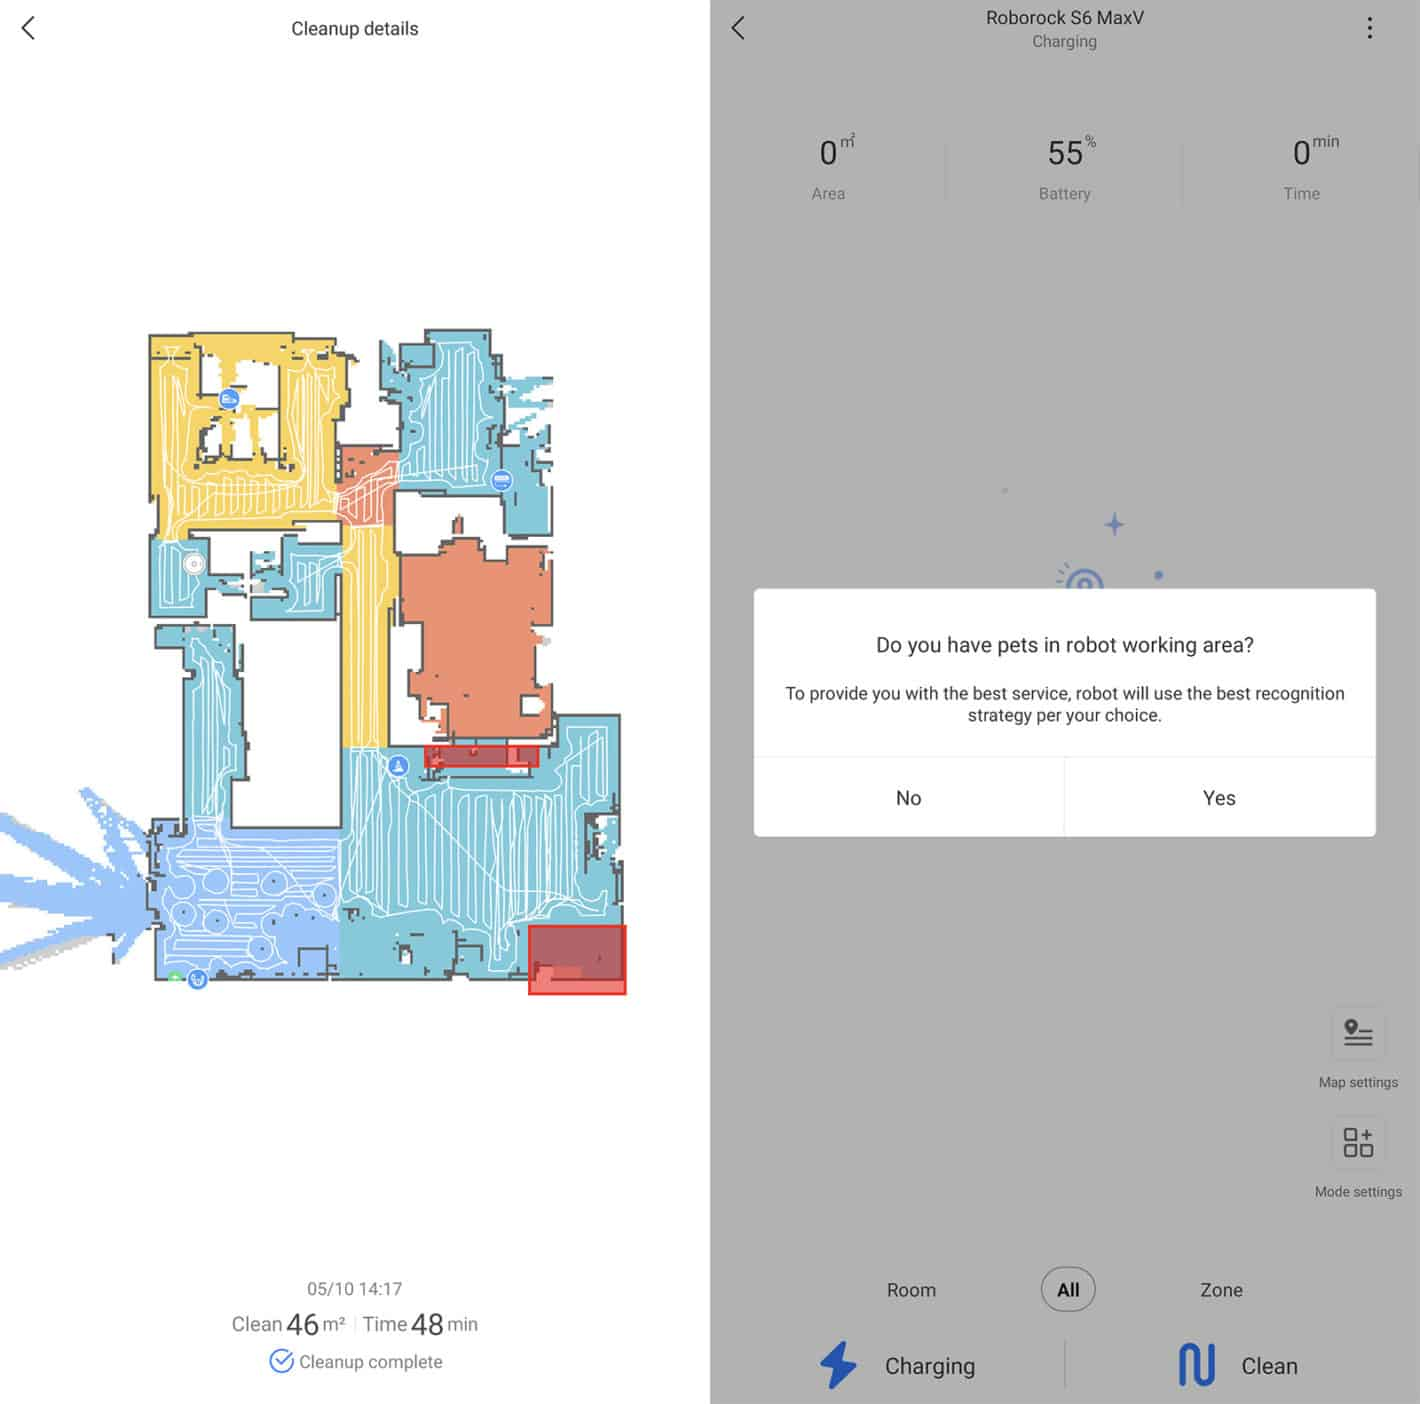 Roborock S6 MaxV app floorplan with obstacles